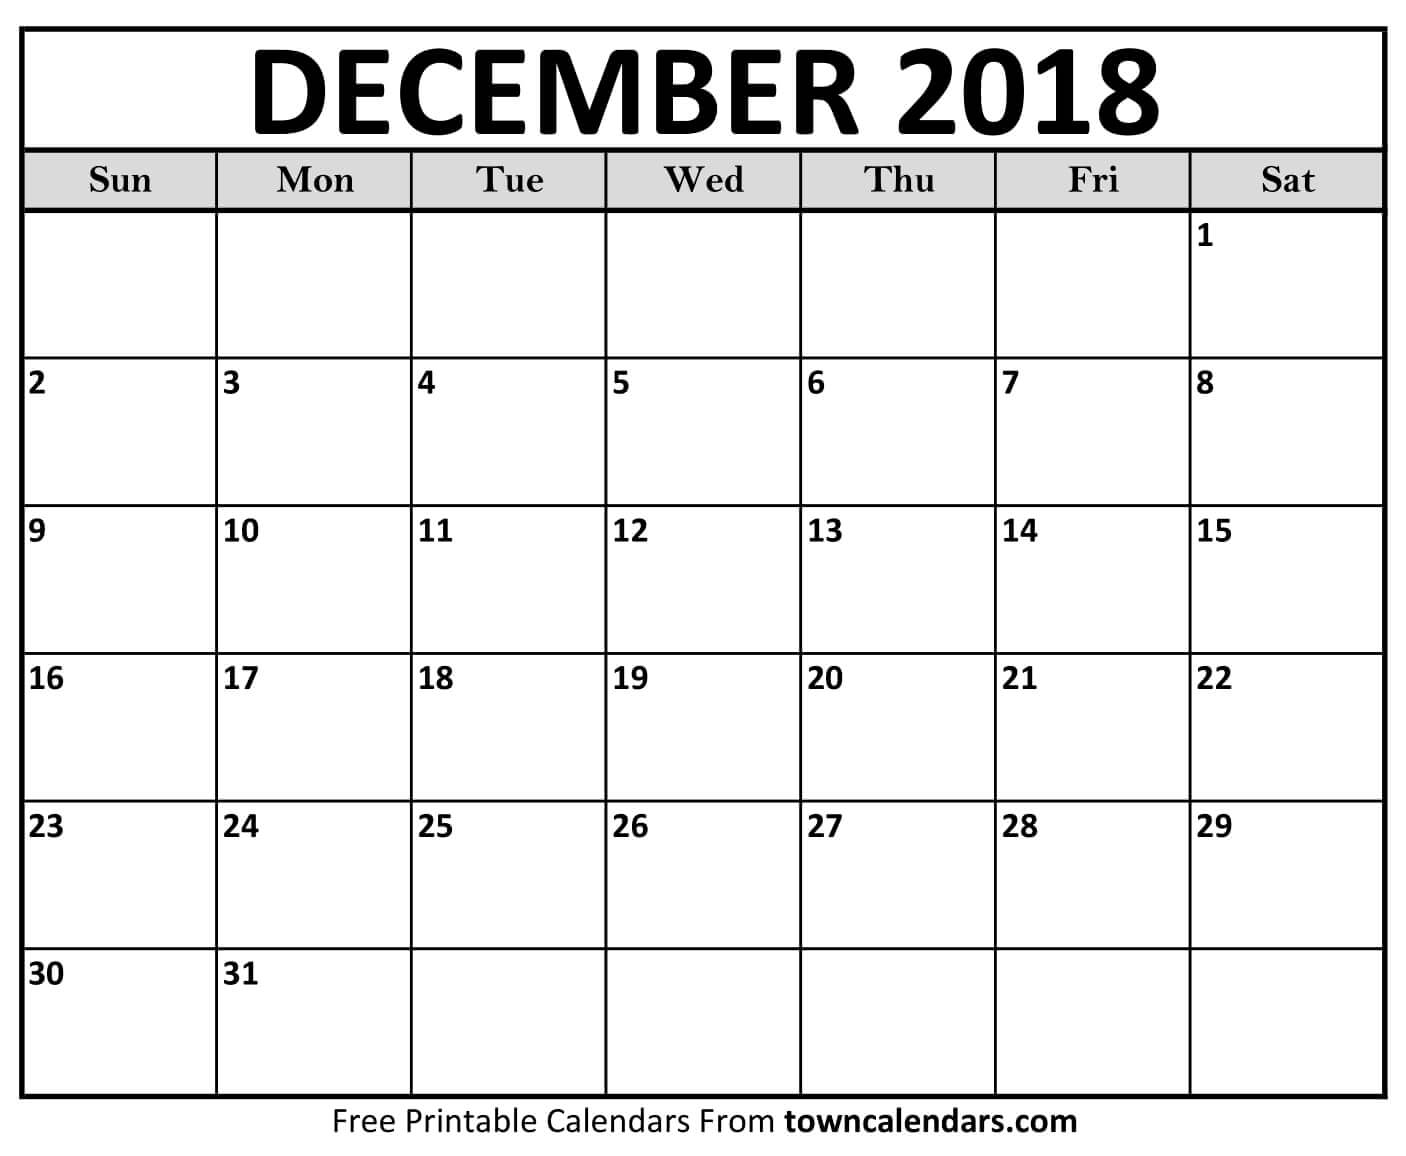 Printable 2018 December Calendar Template - Printable Calendar 2019 with Blank Printable Calendar December